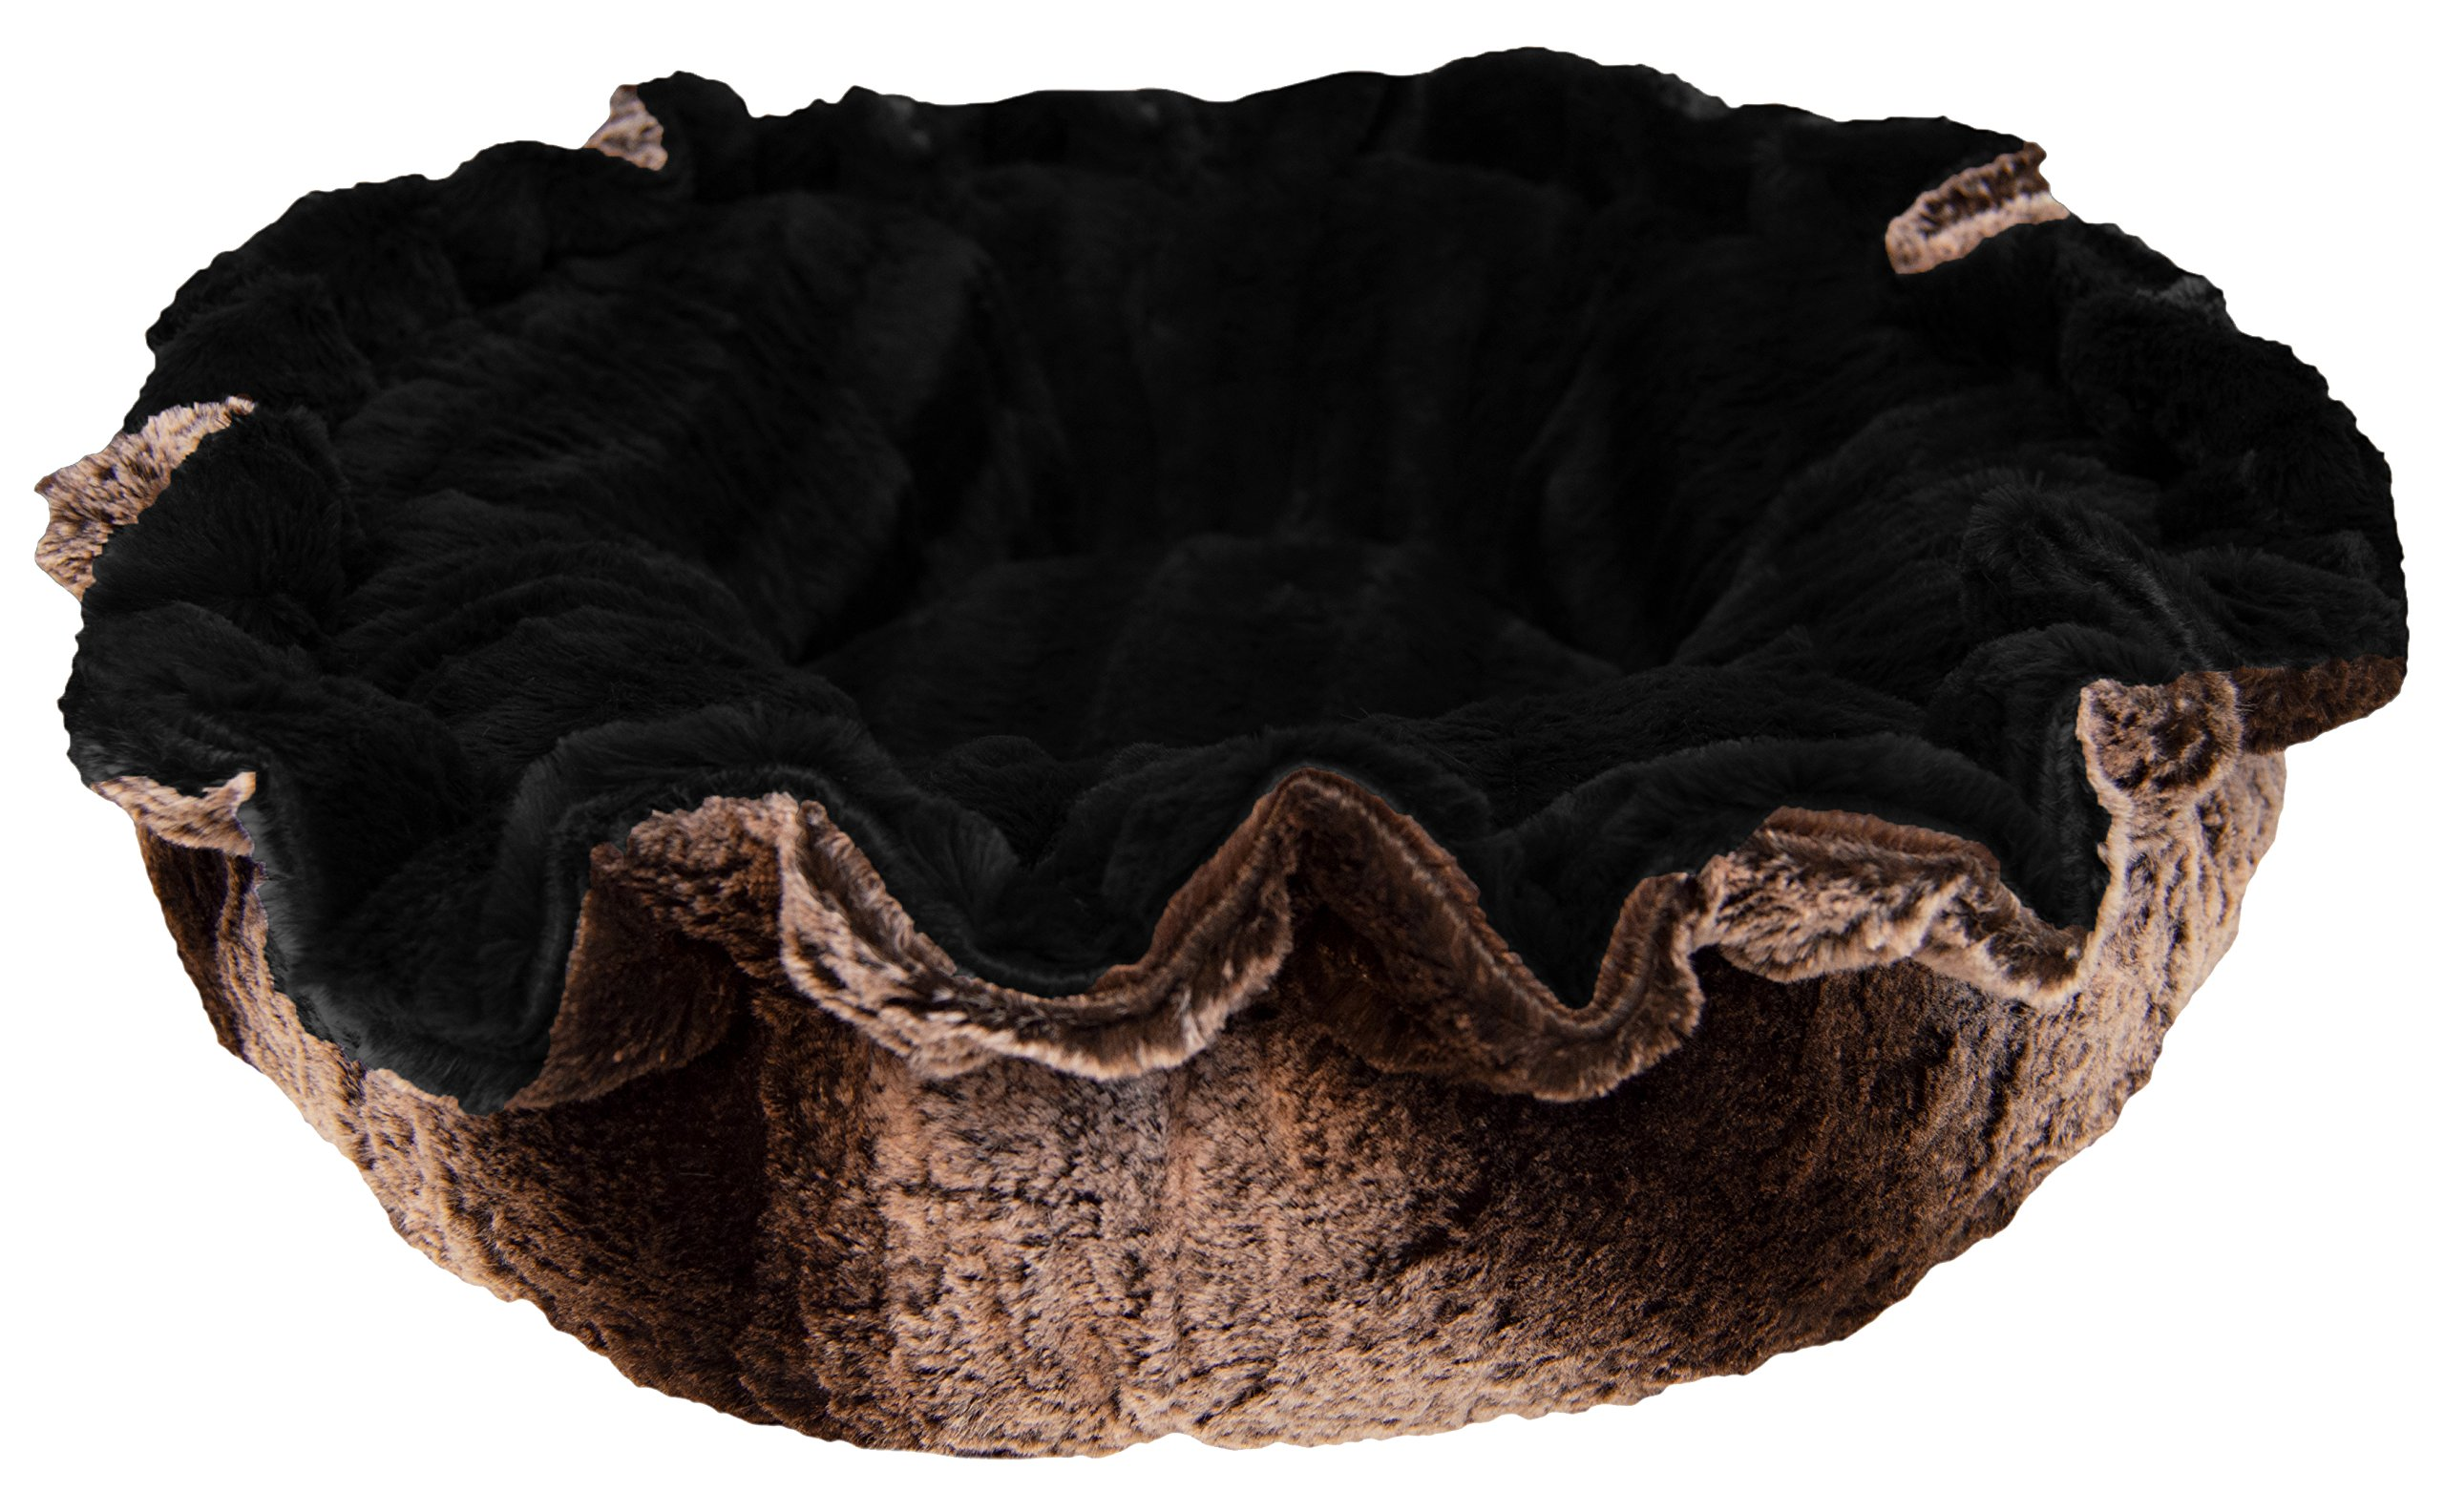 BESSIE AND BARNIE Ultra Plush Frosted Glaicer/Black Puma Luxury Deluxe Dog/Pet Lily Pod Bed